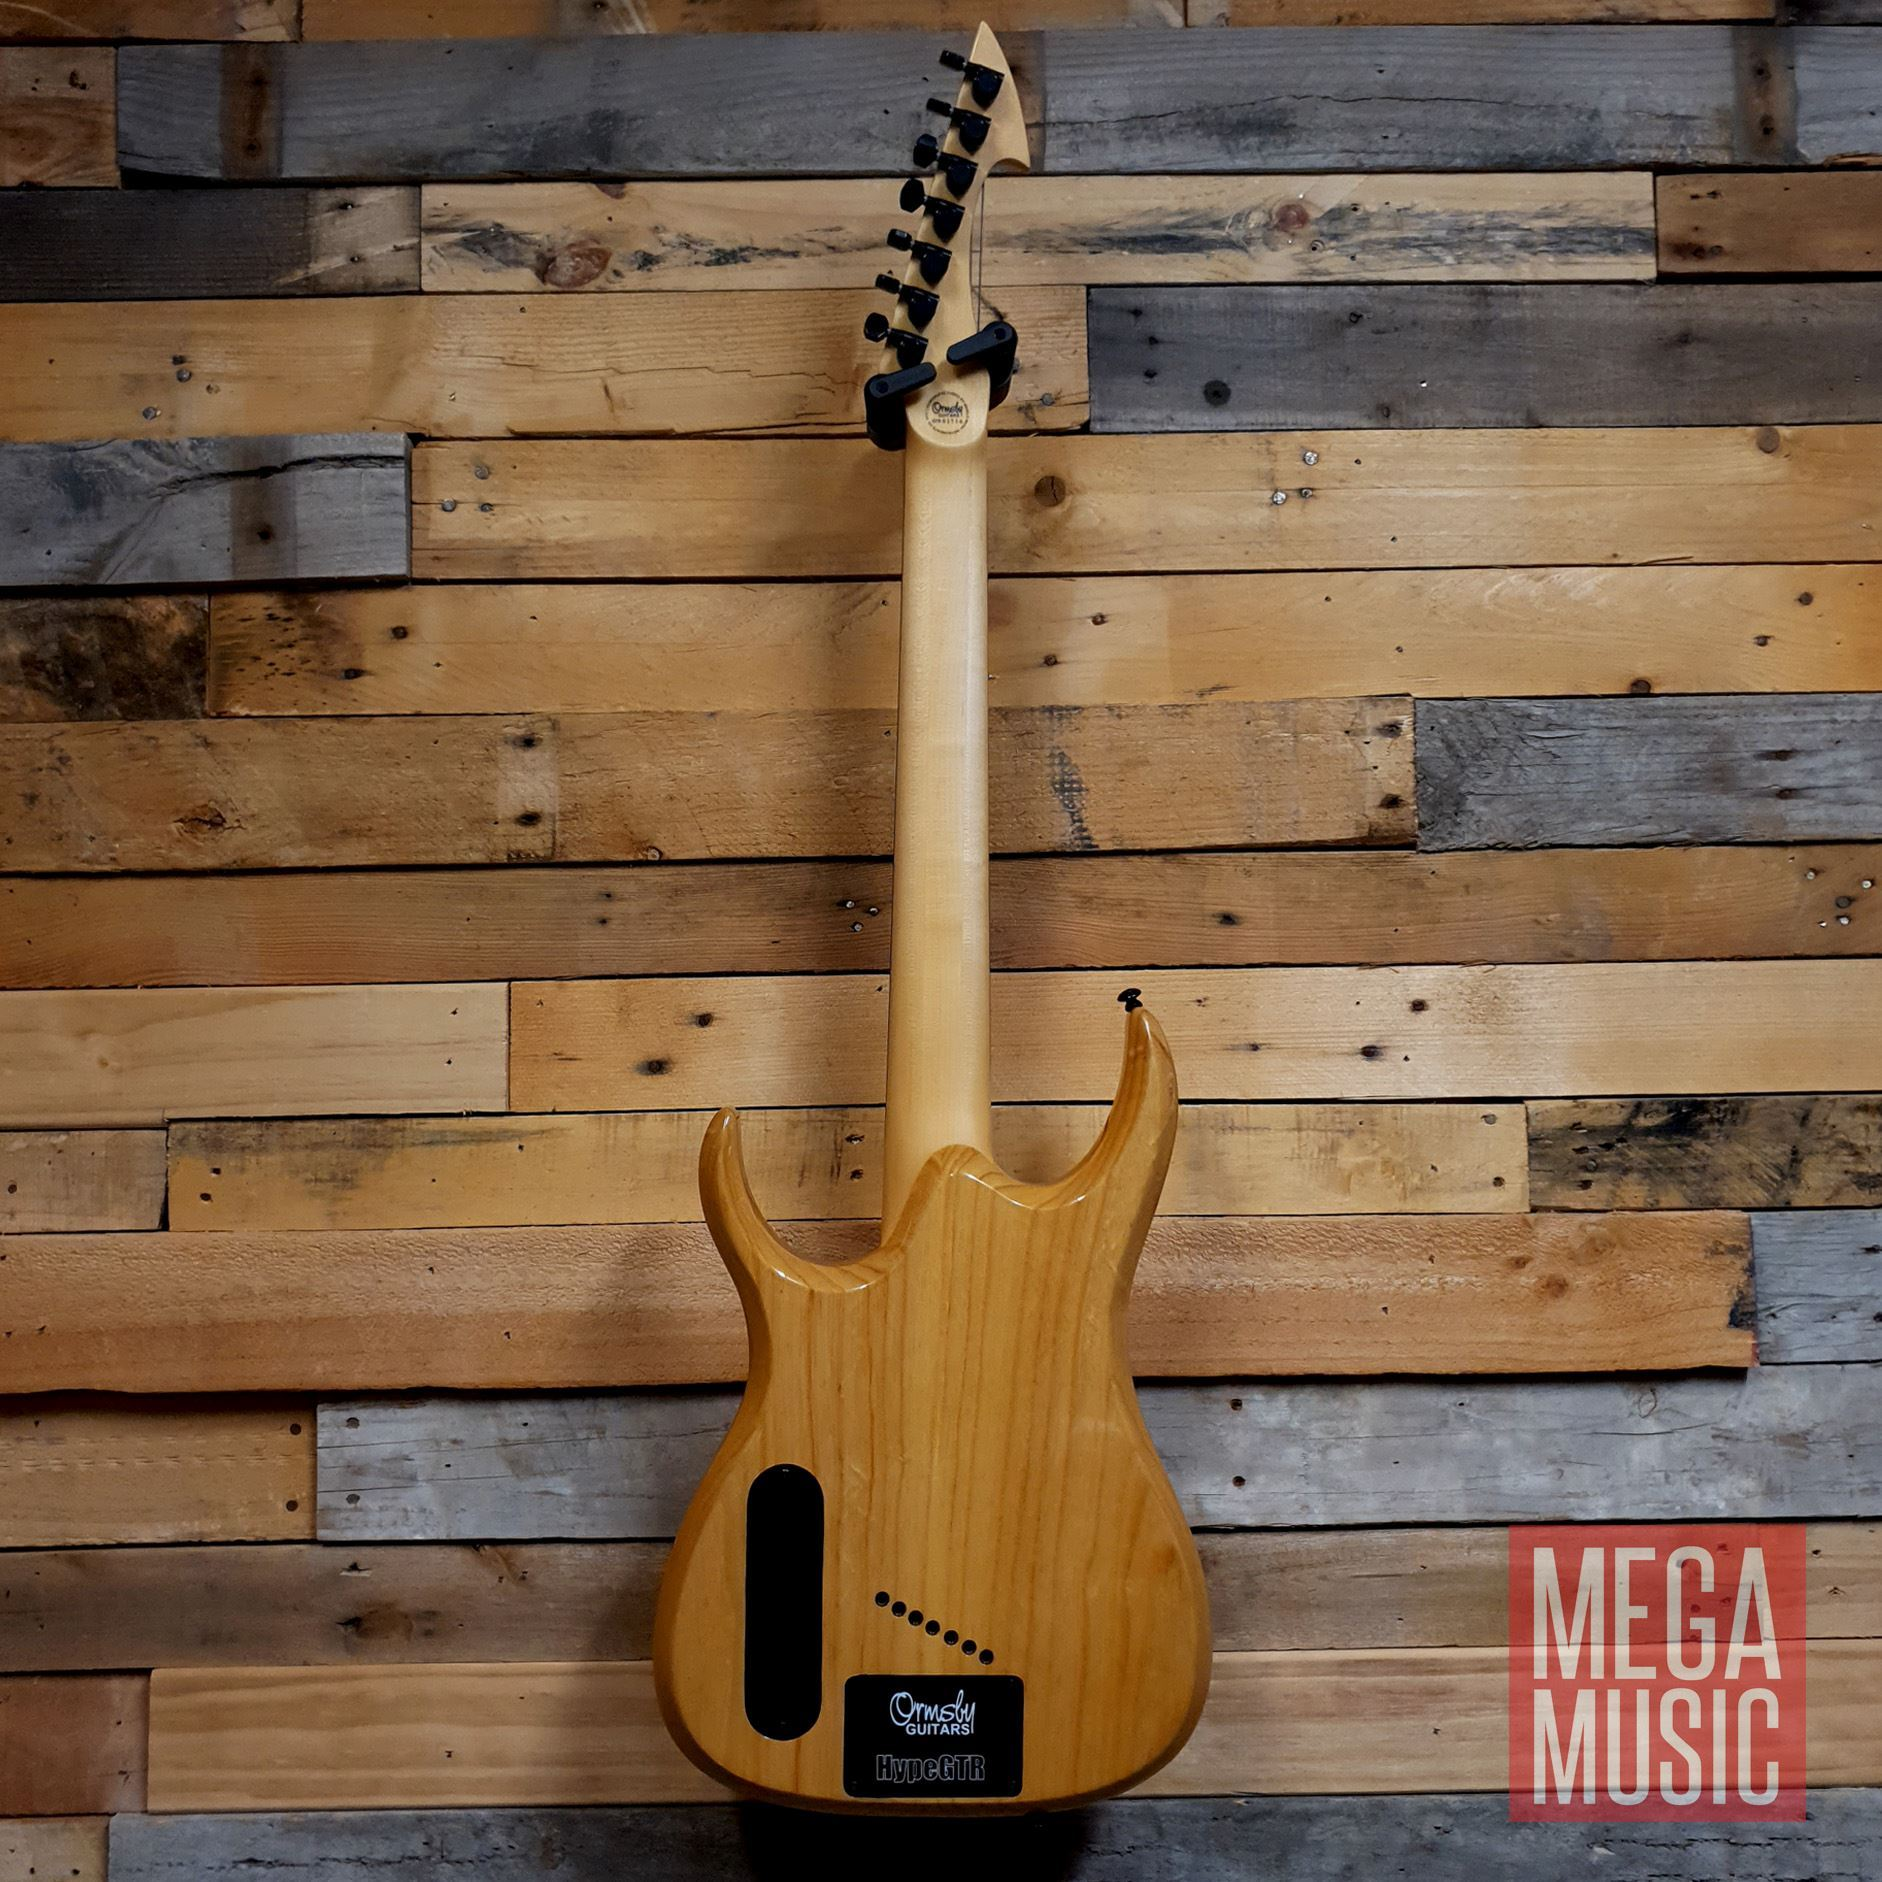 Ormsby Reissue Hype GTR 7 String Electric Guitar - Gloss Ash - Back